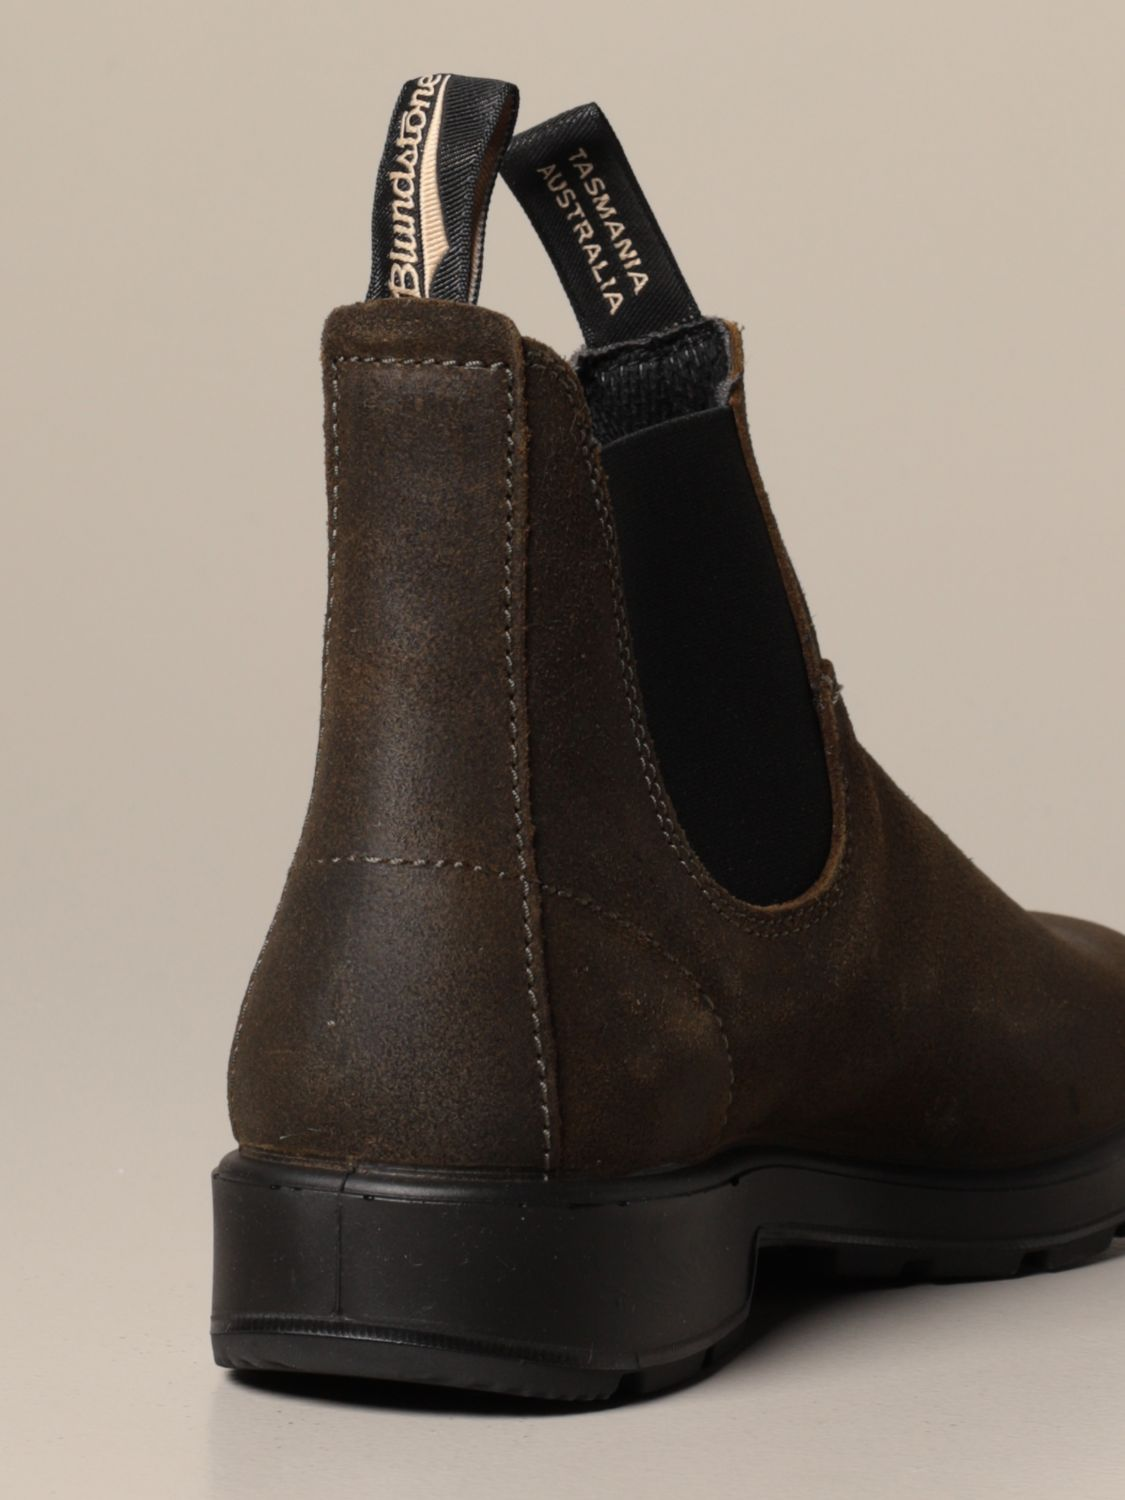 Boots Blundstone: Boots men Blundstone olive 3